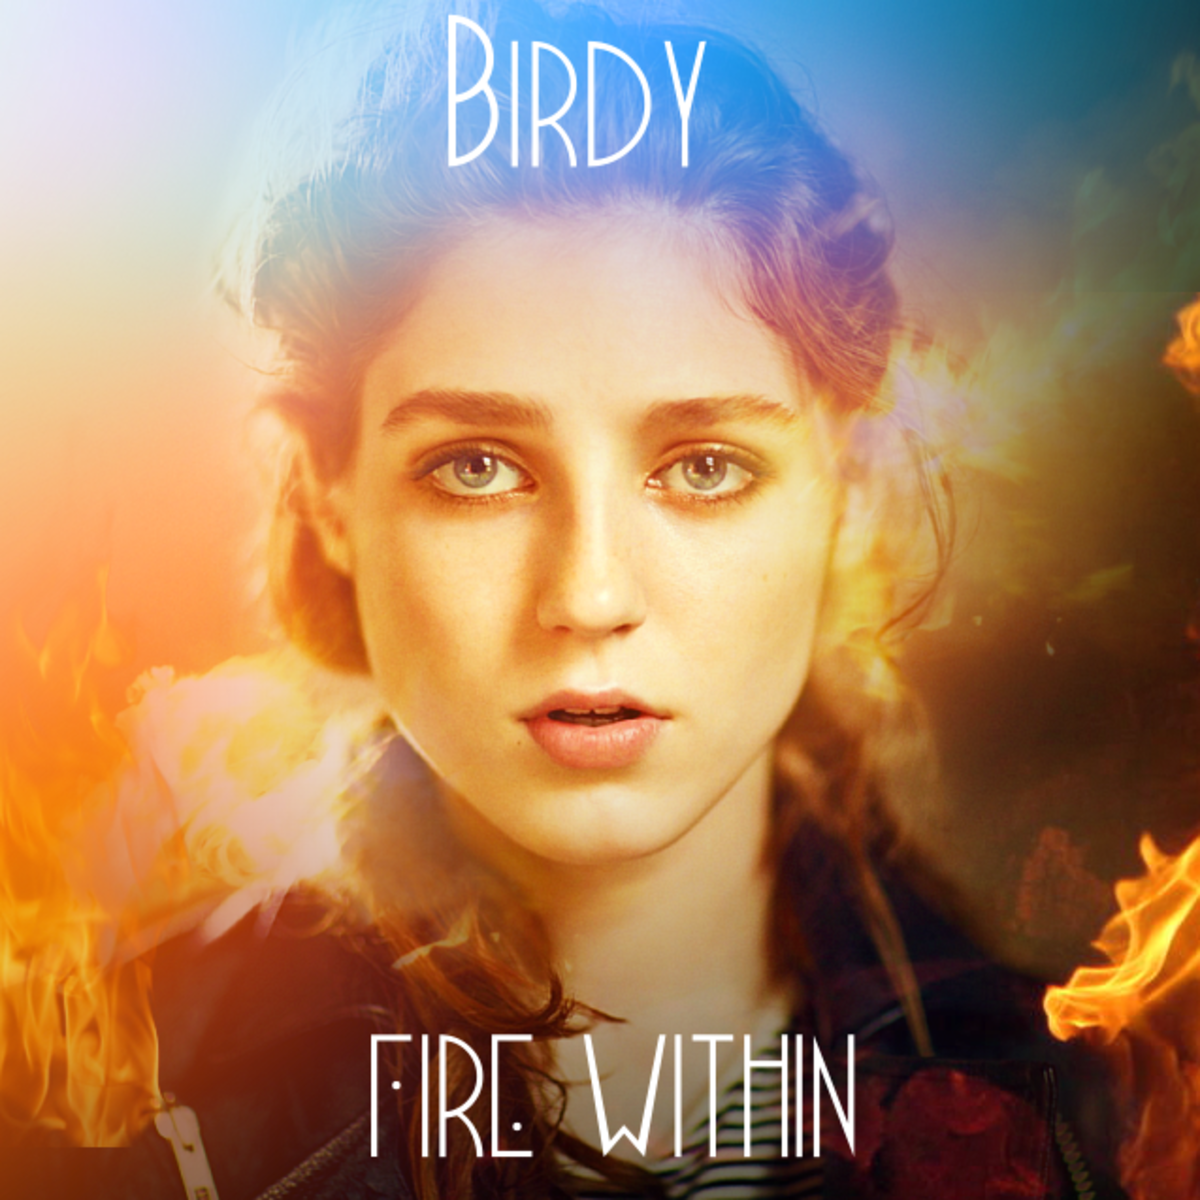 Birdy - Fire Within (Limited Deluxe Edition) (2013)